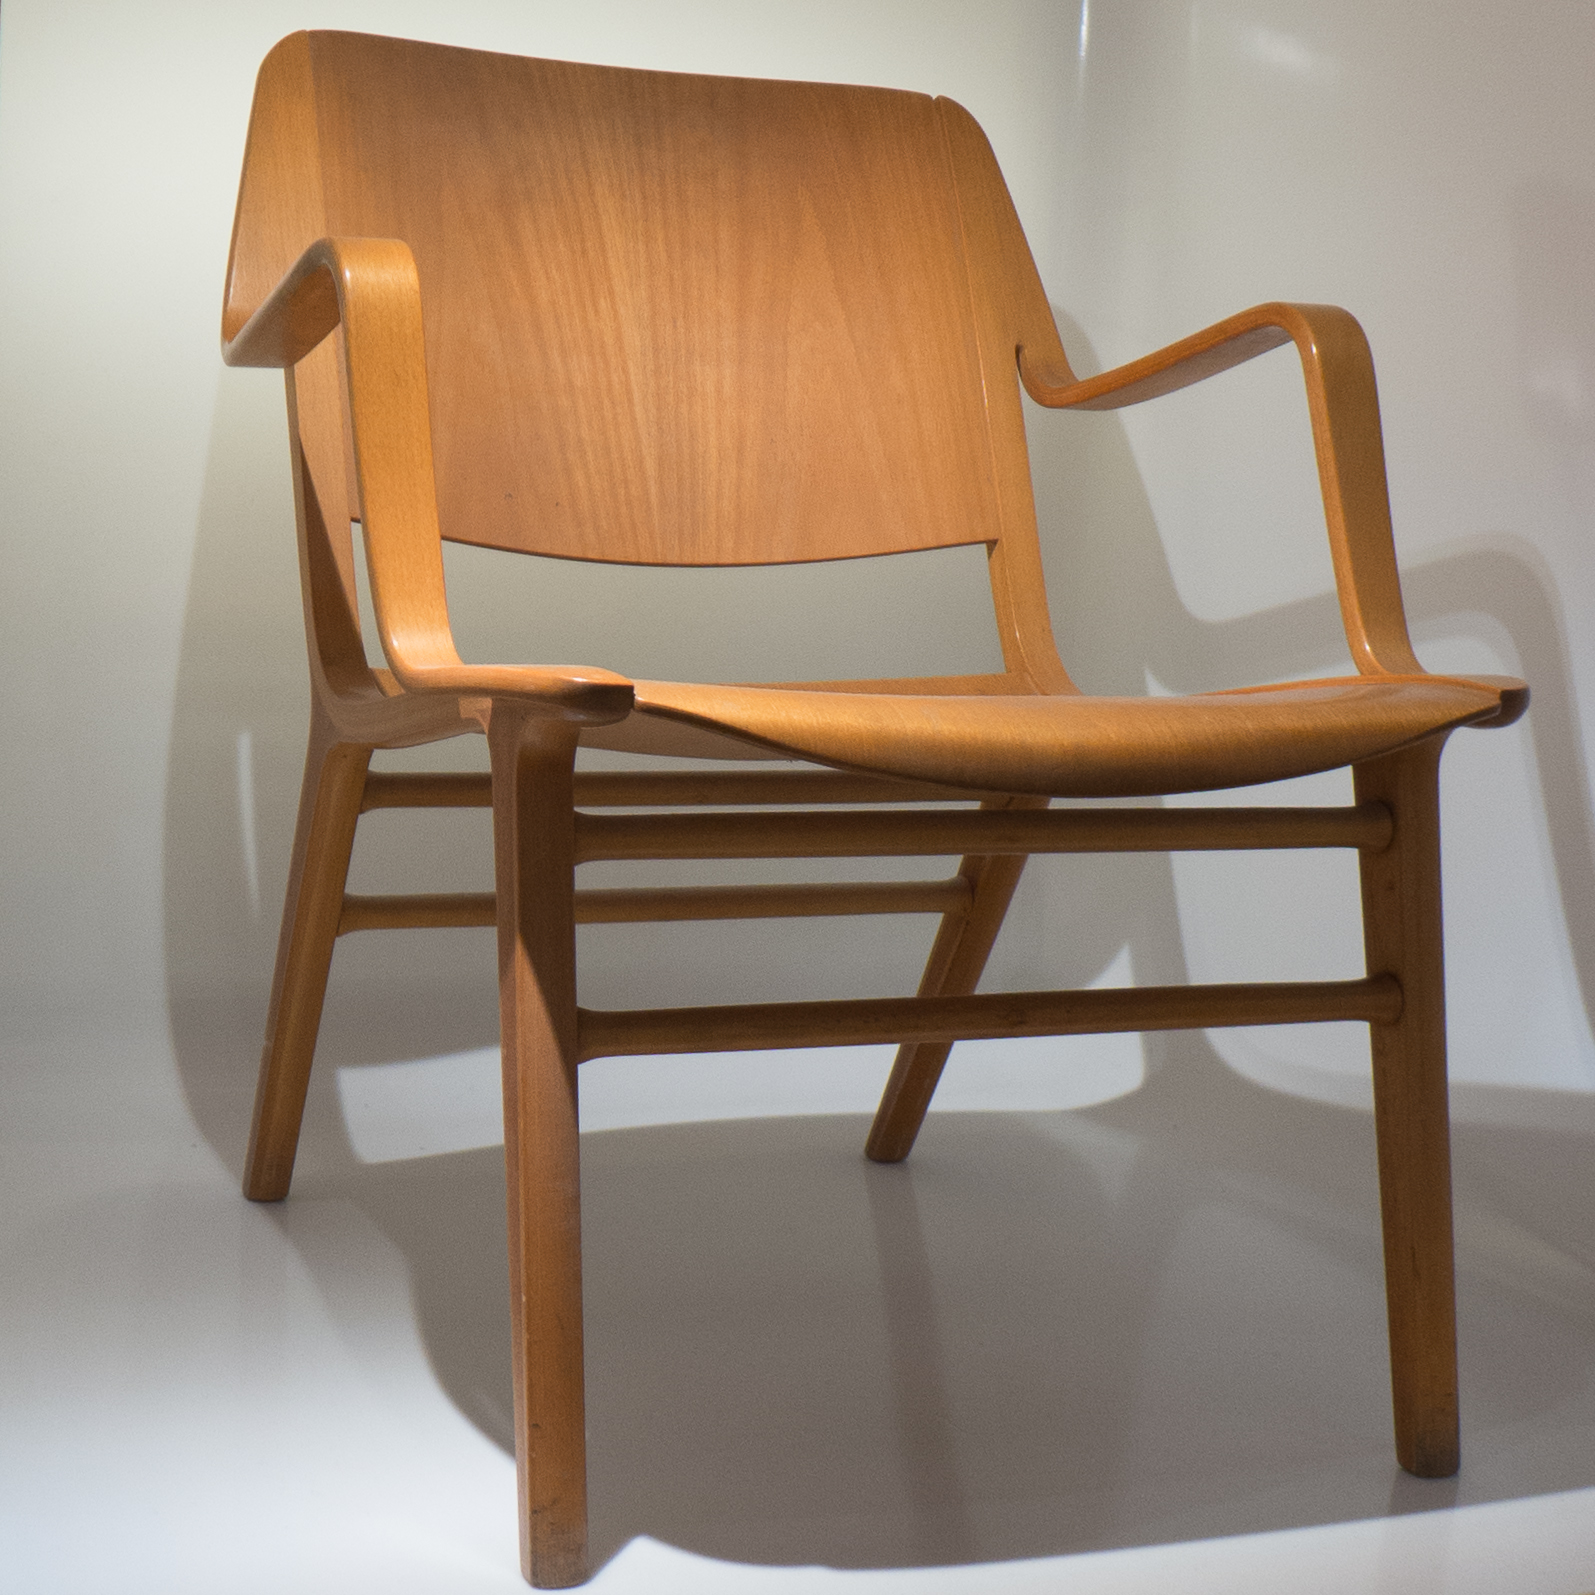 Danish Chair Ax Chair By Peter Hvidt And Orla Mølgaard Nielsen 1947 Danish